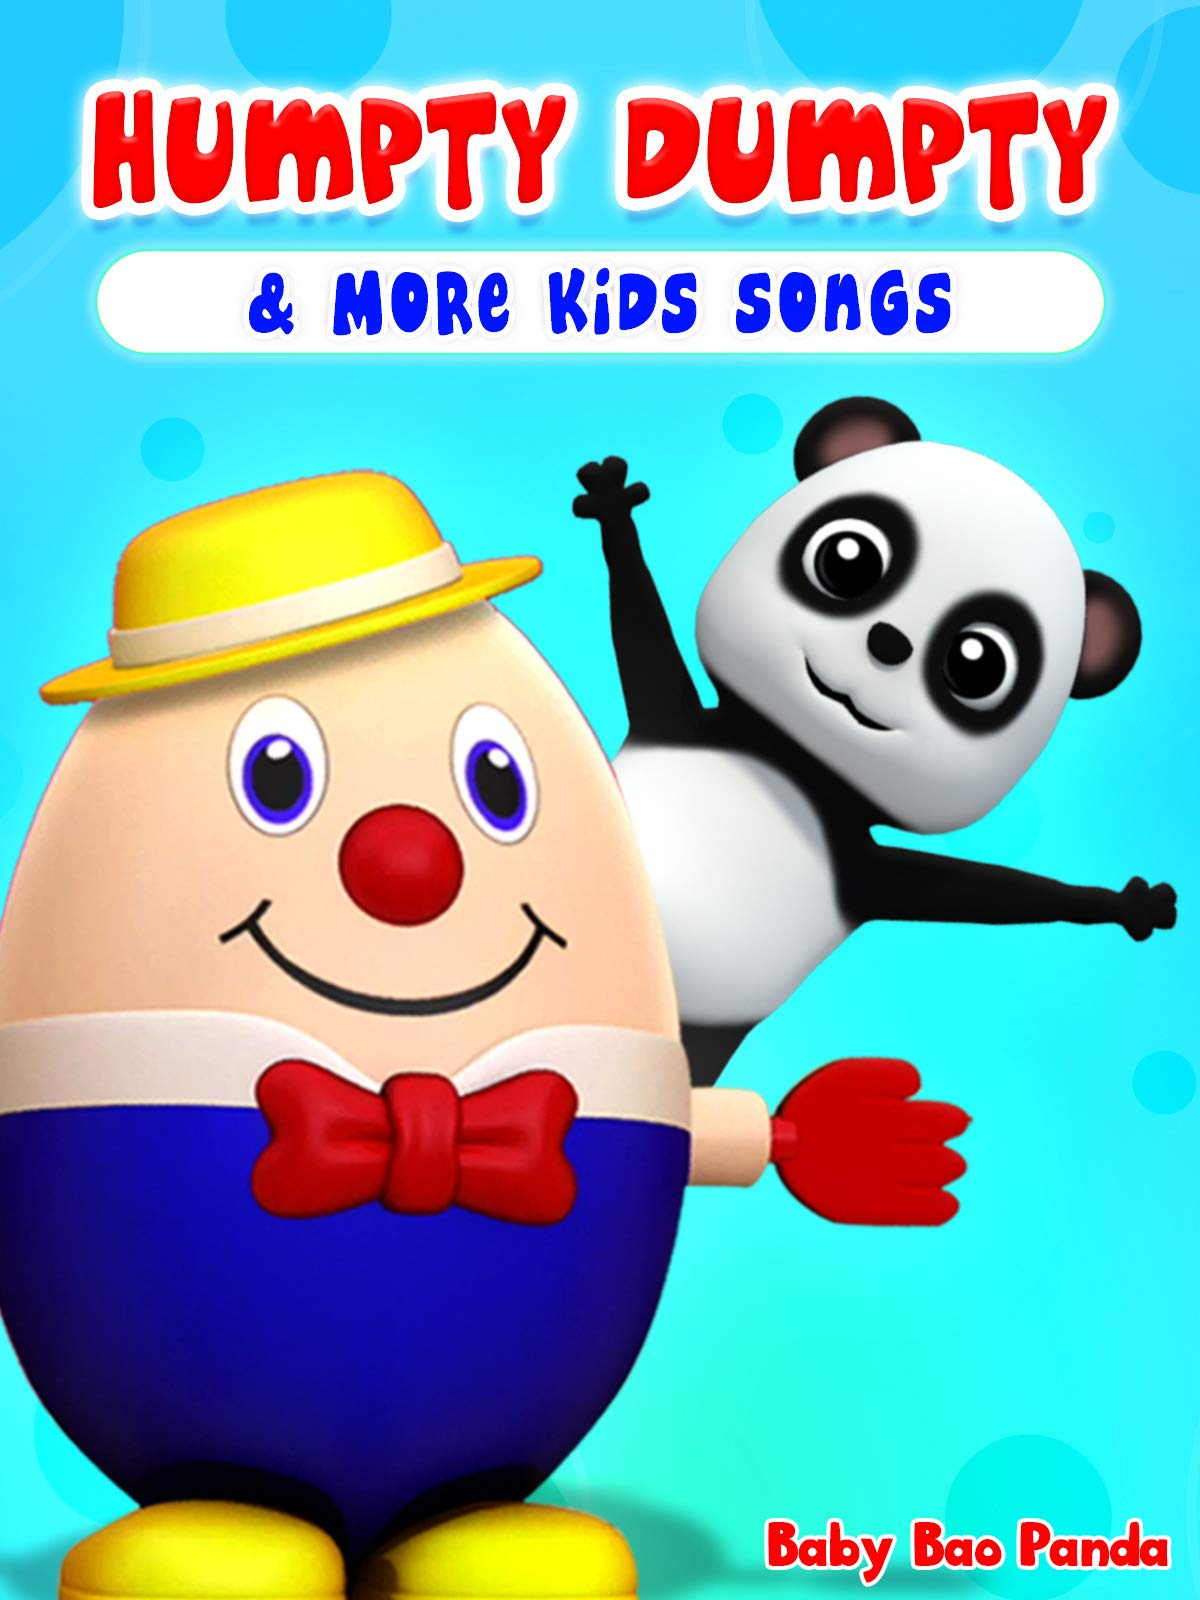 Humpty Dumpty & More Kids Songs (Baby Bao Panda)